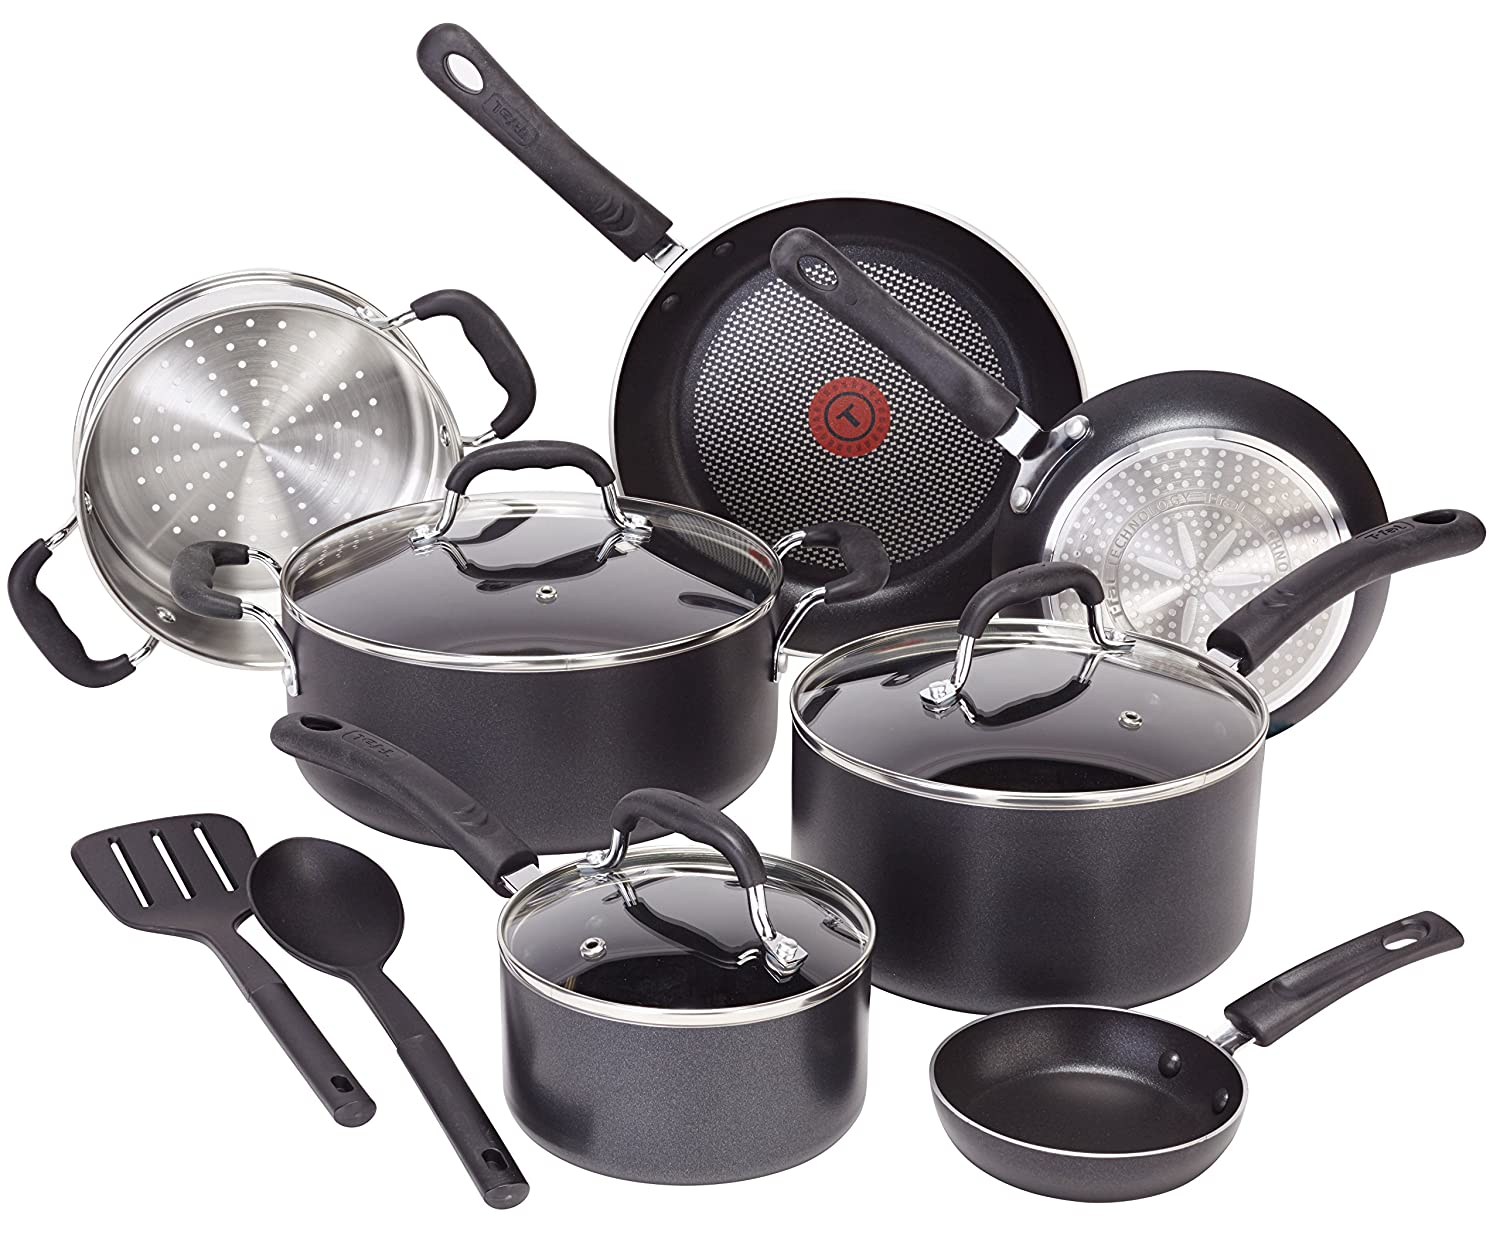 T-fal Nonstick Cookware Set